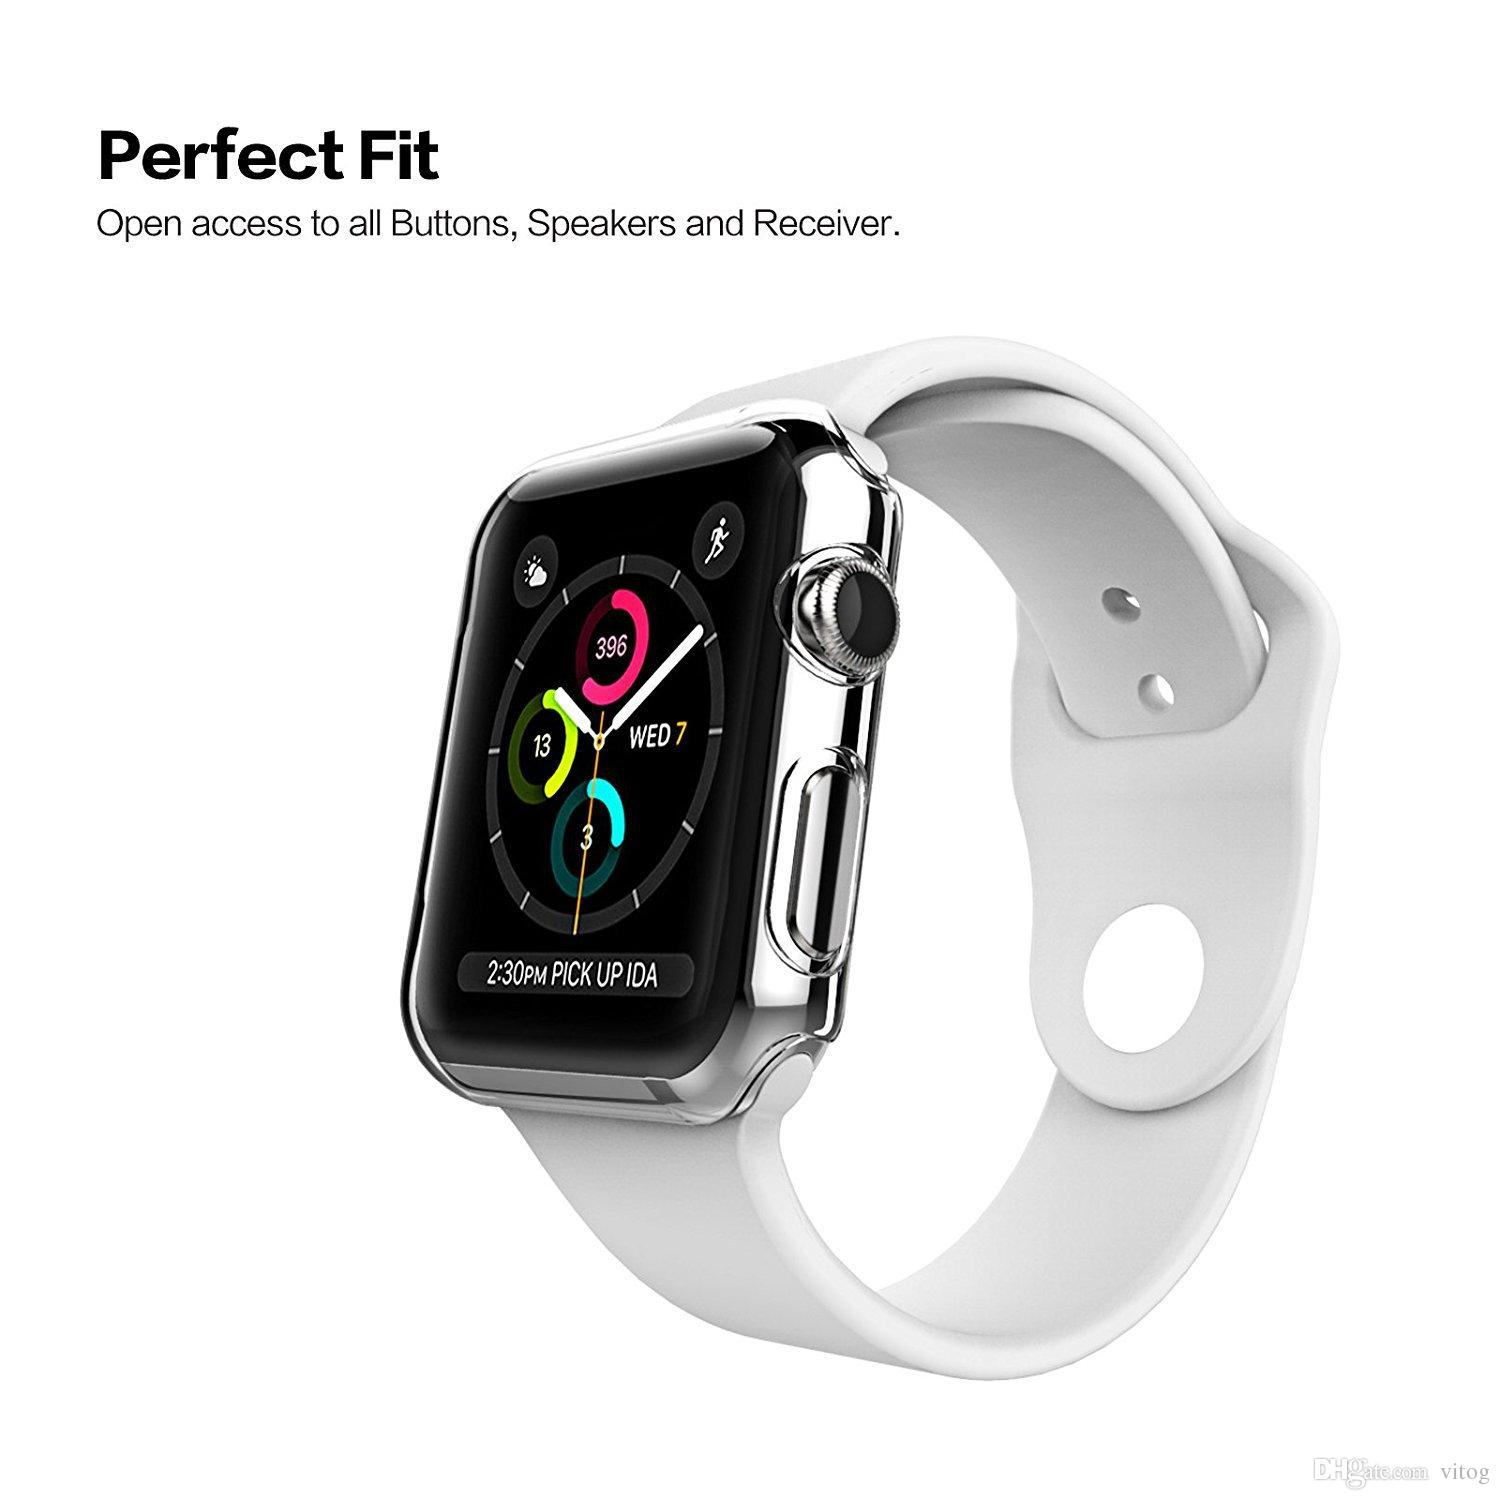 Cubierta transparente de la caja protectora transparente ultra delgada para PC de Apple Watch Series 4 3 2 1 iwatch 38mm 42mm